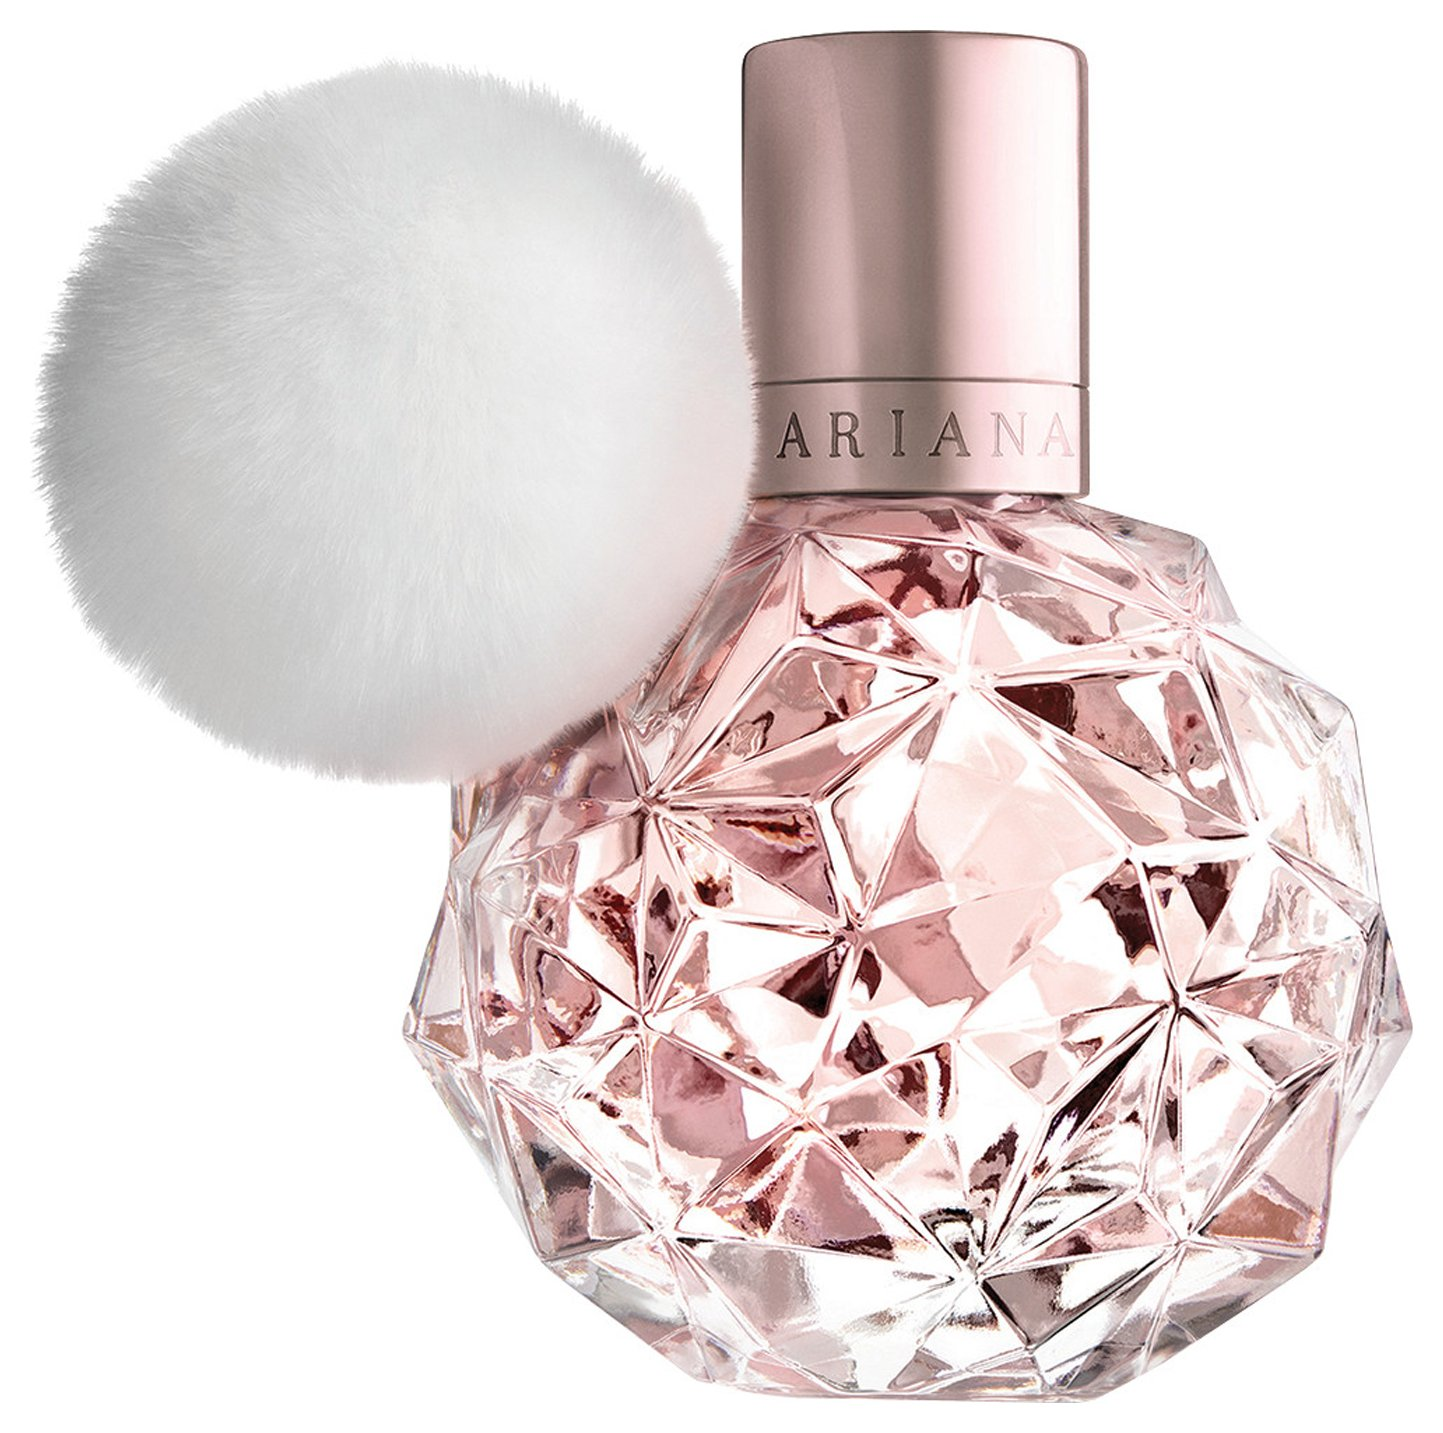 Ari by Ariana Grande 30ml Eau De Parfum from Ariana Grande